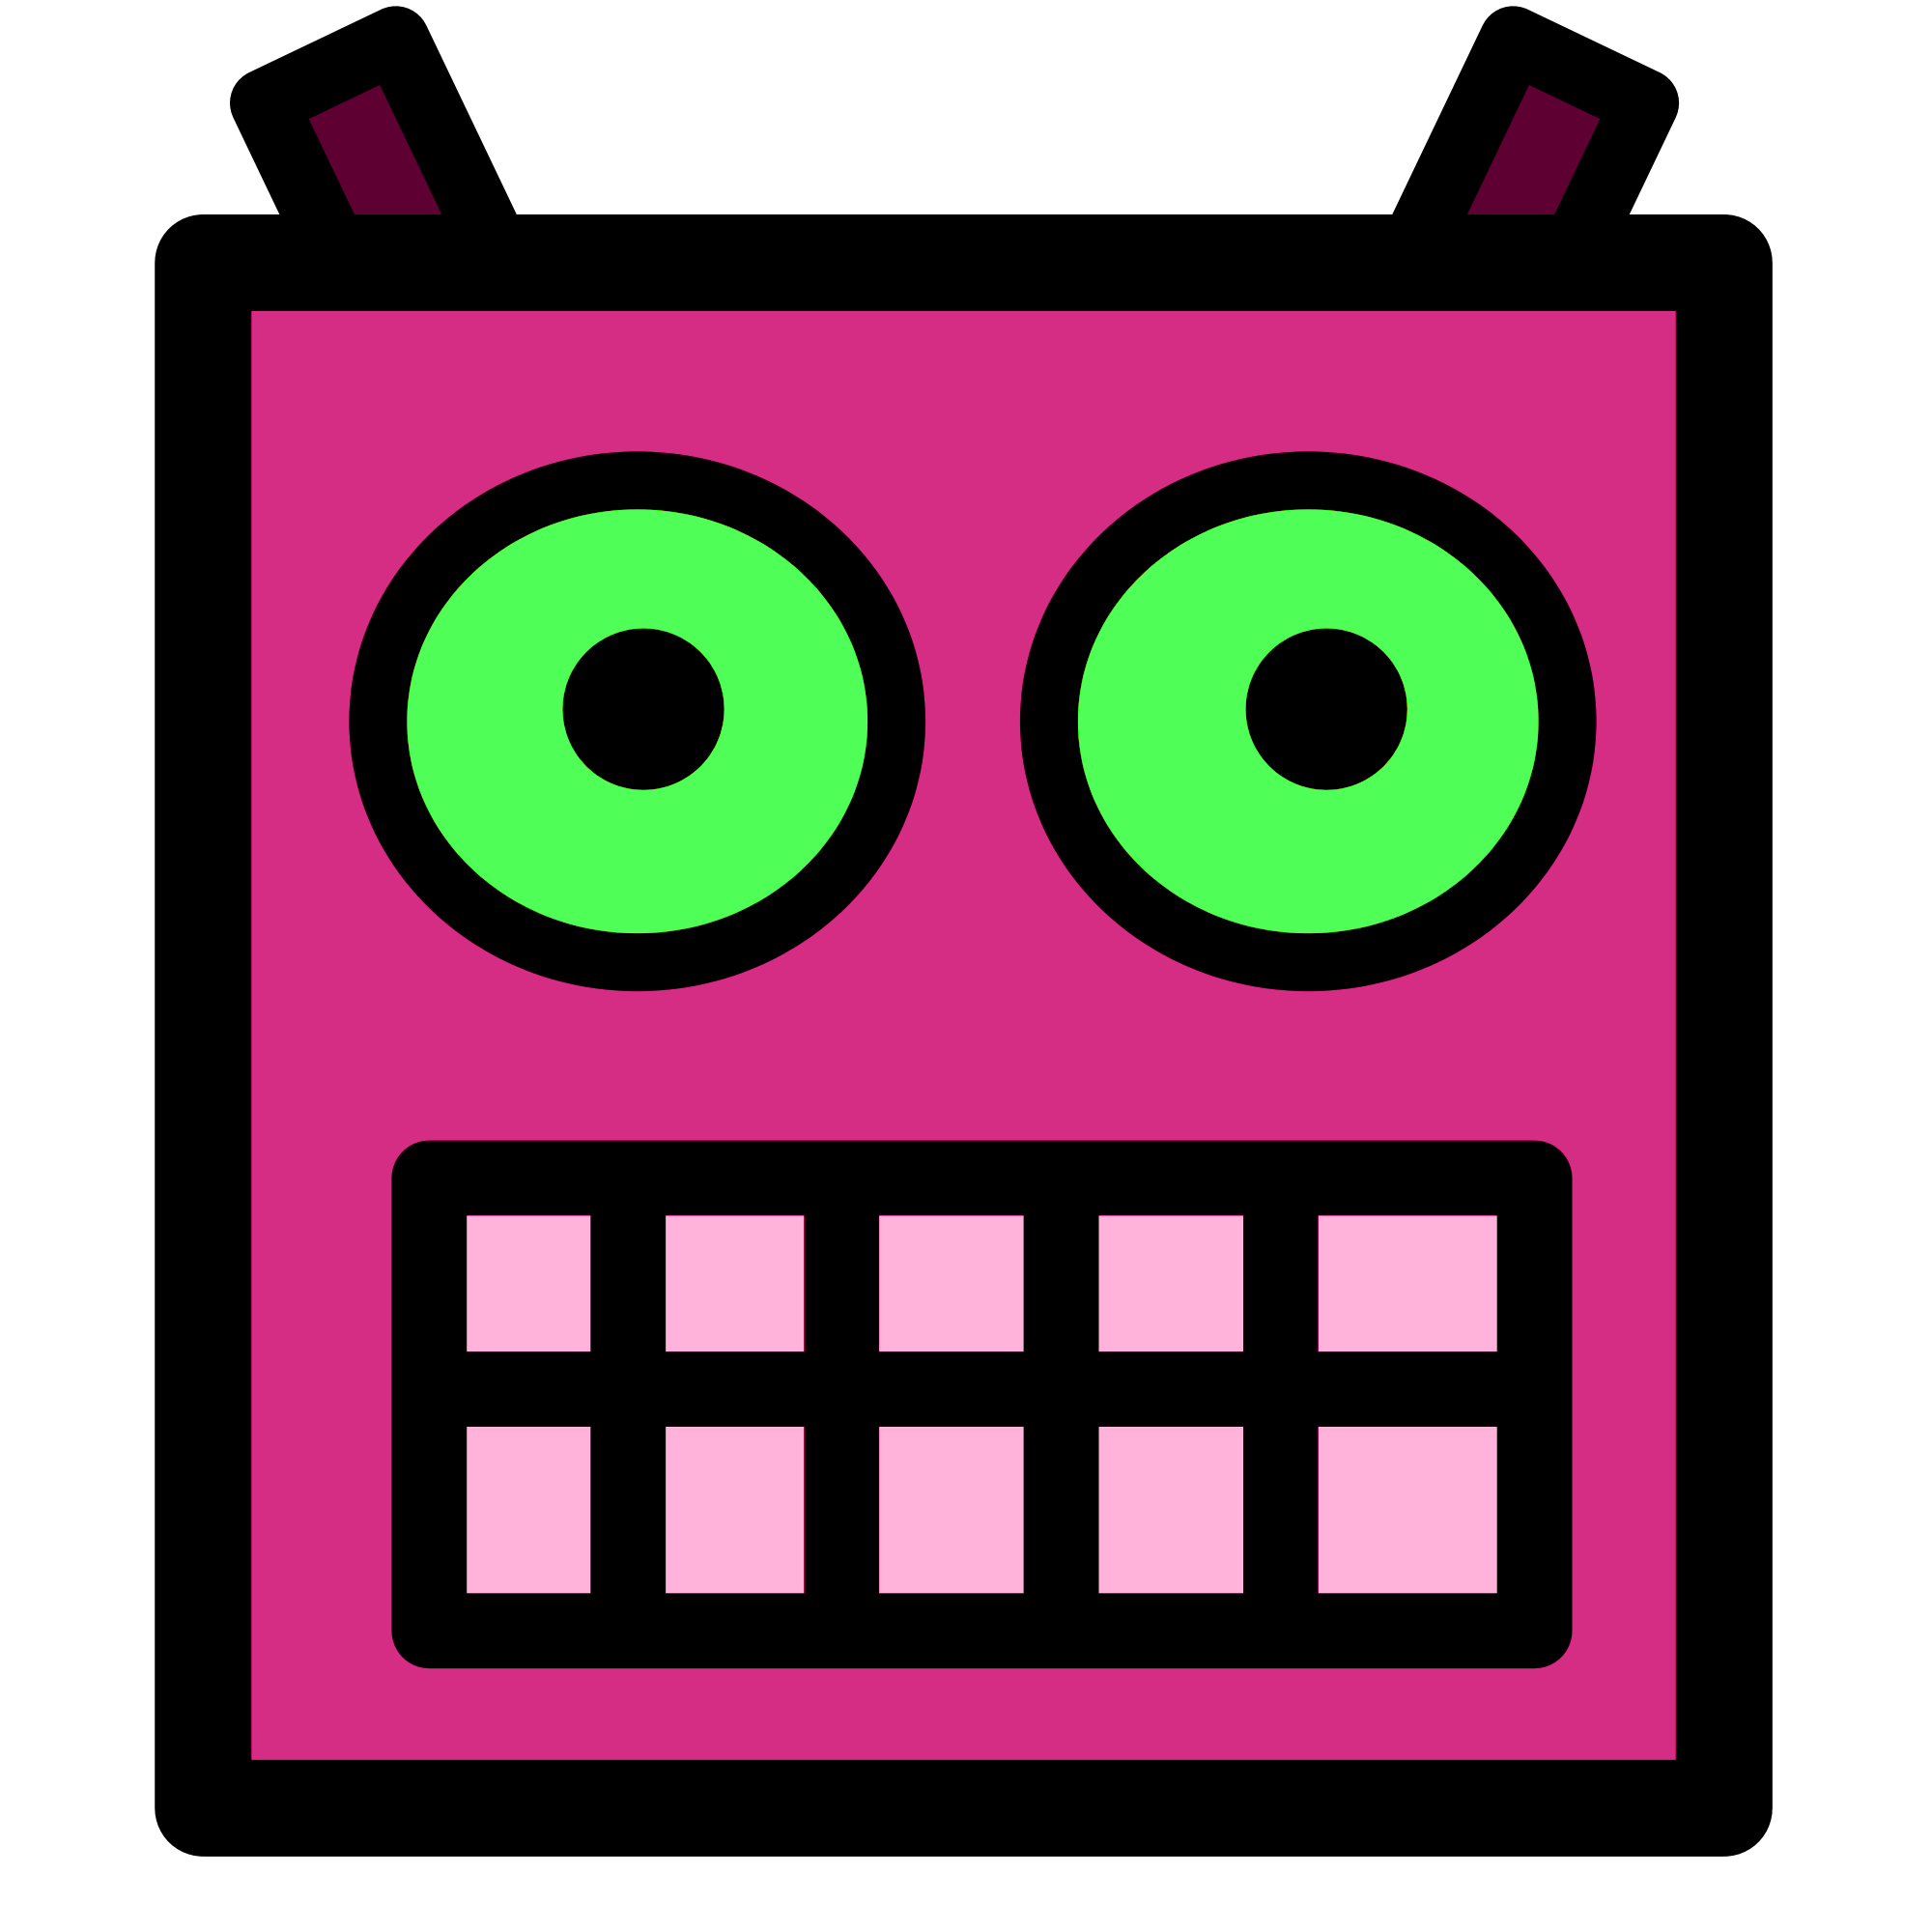 Eyes clipart robot. File pink or plum